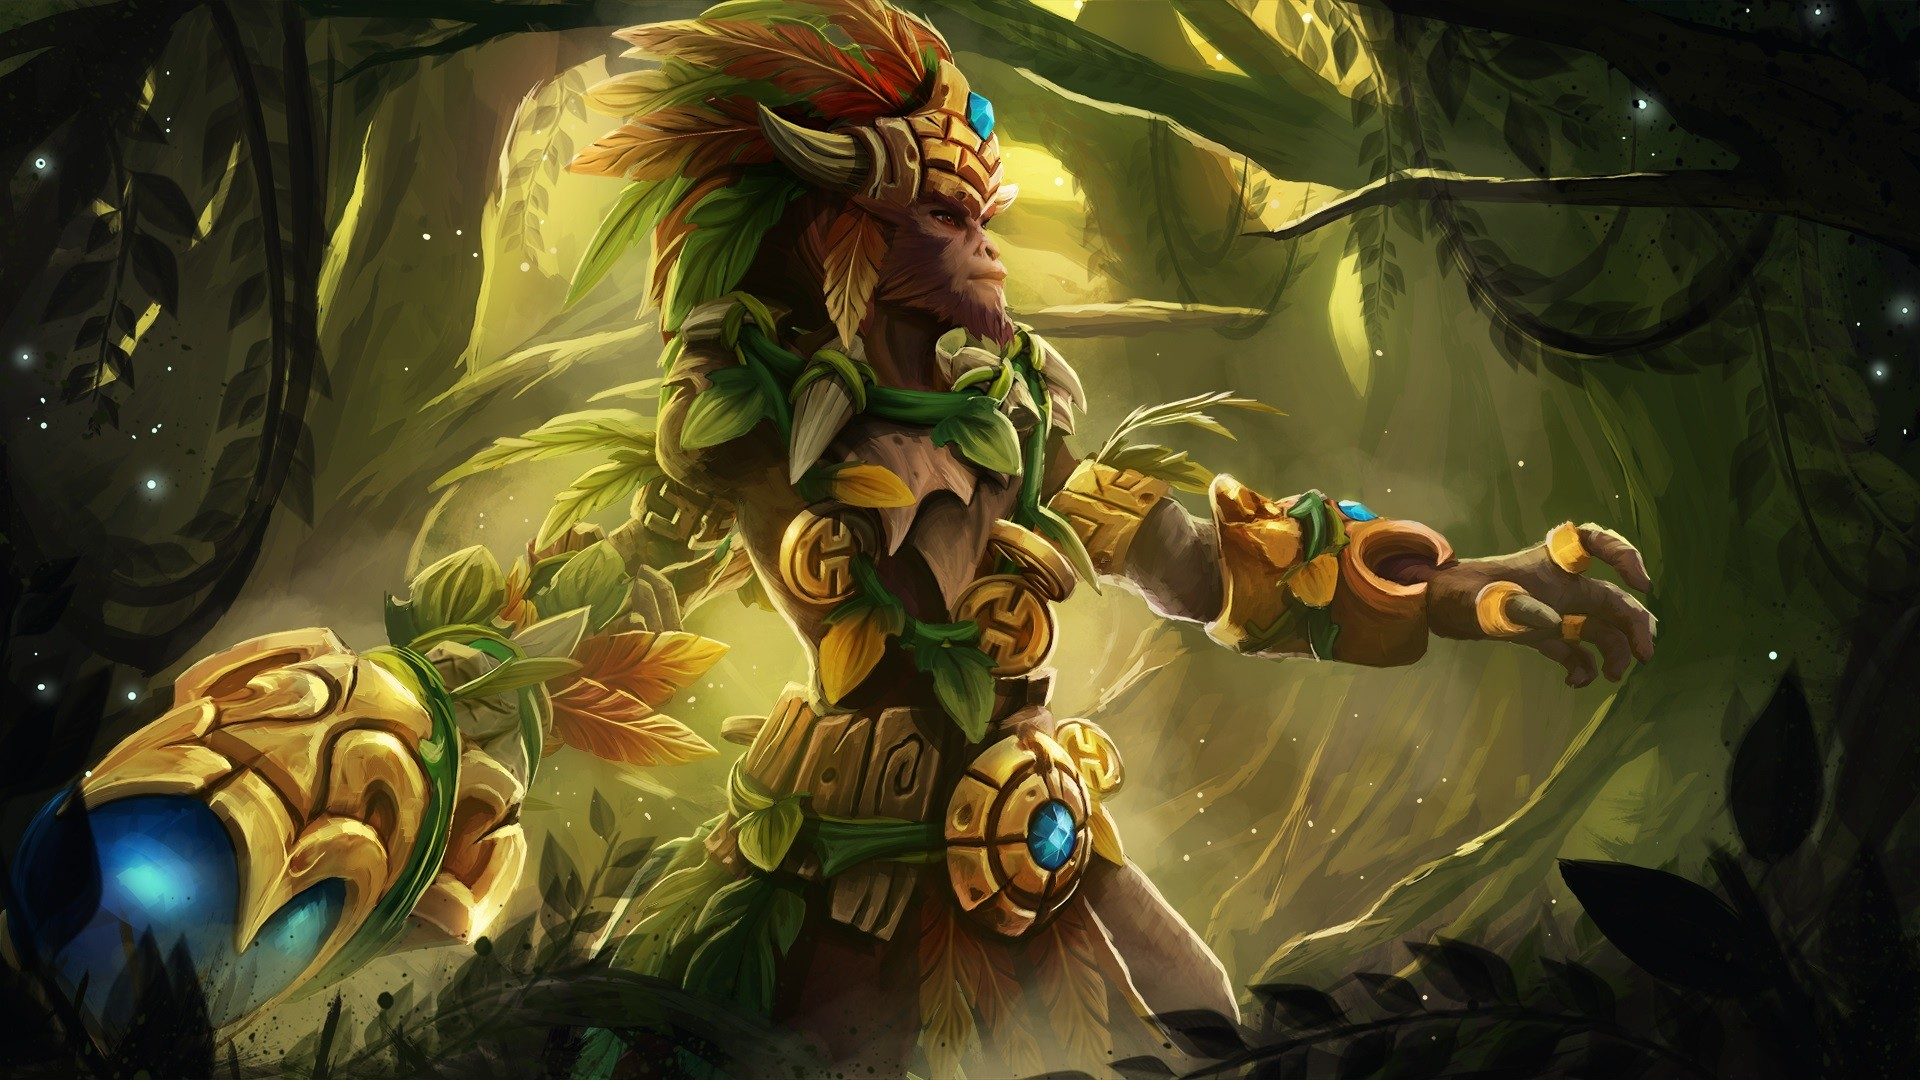 Monkey King Wallpaper 76 Images